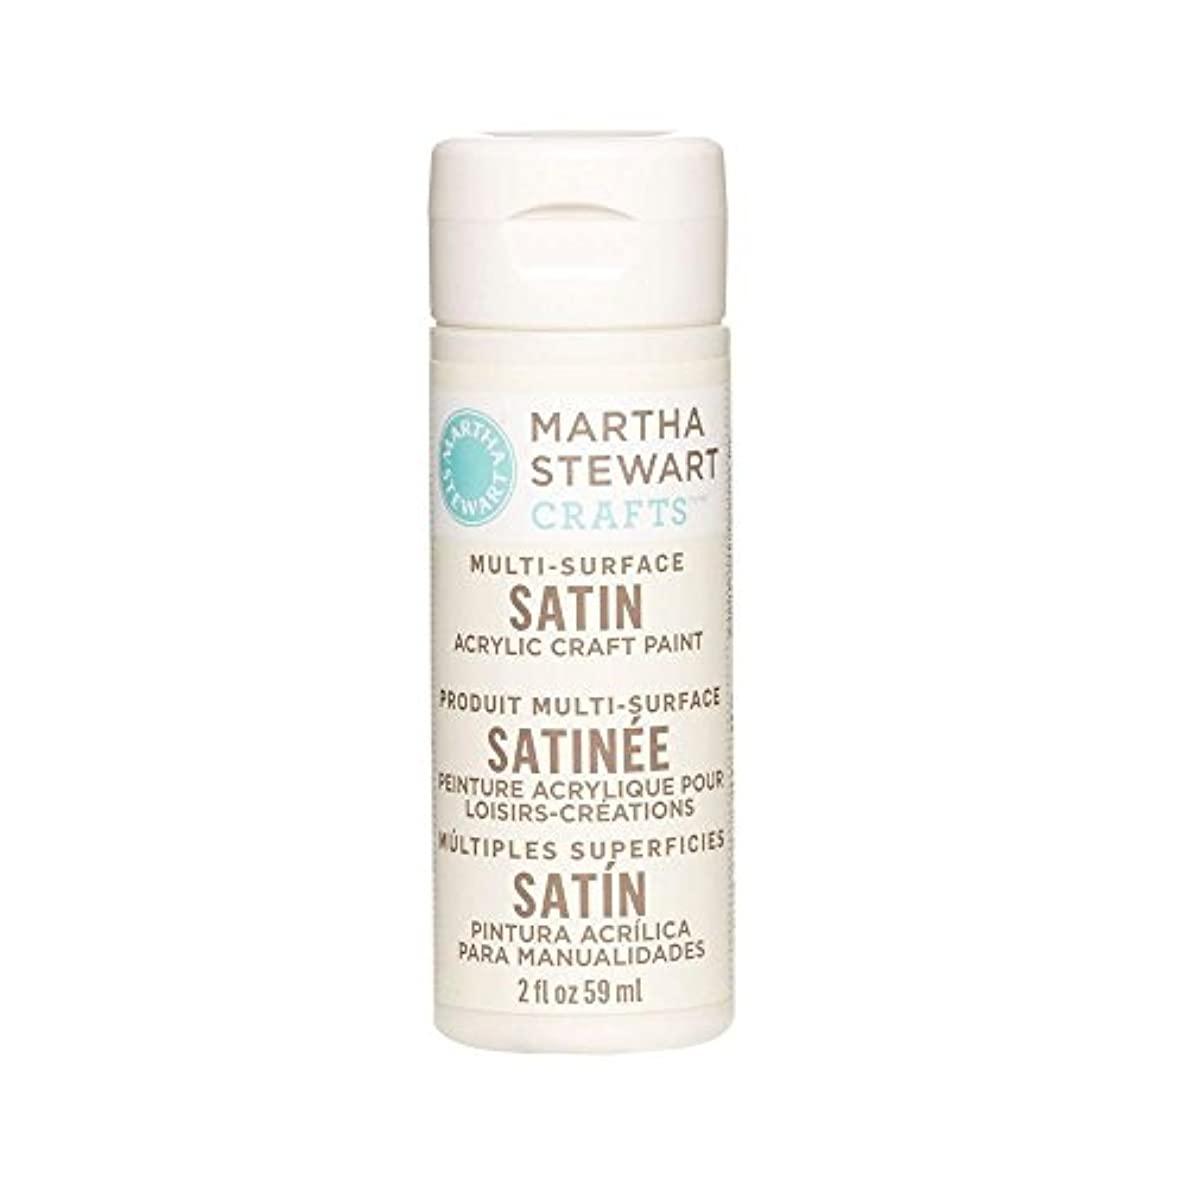 Martha Stewart Crafts Multi-Surface Satin Acrylic Craft Paint in Assorted Colors (2-Ounce), 32075 Summer Linen